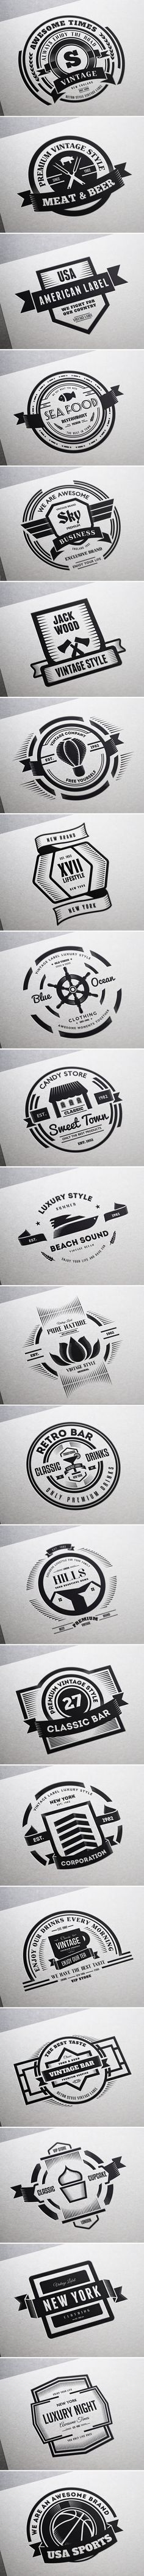 22 Vintage Labels & Badges / Logos / Insignias by Think Big Design, via Behance